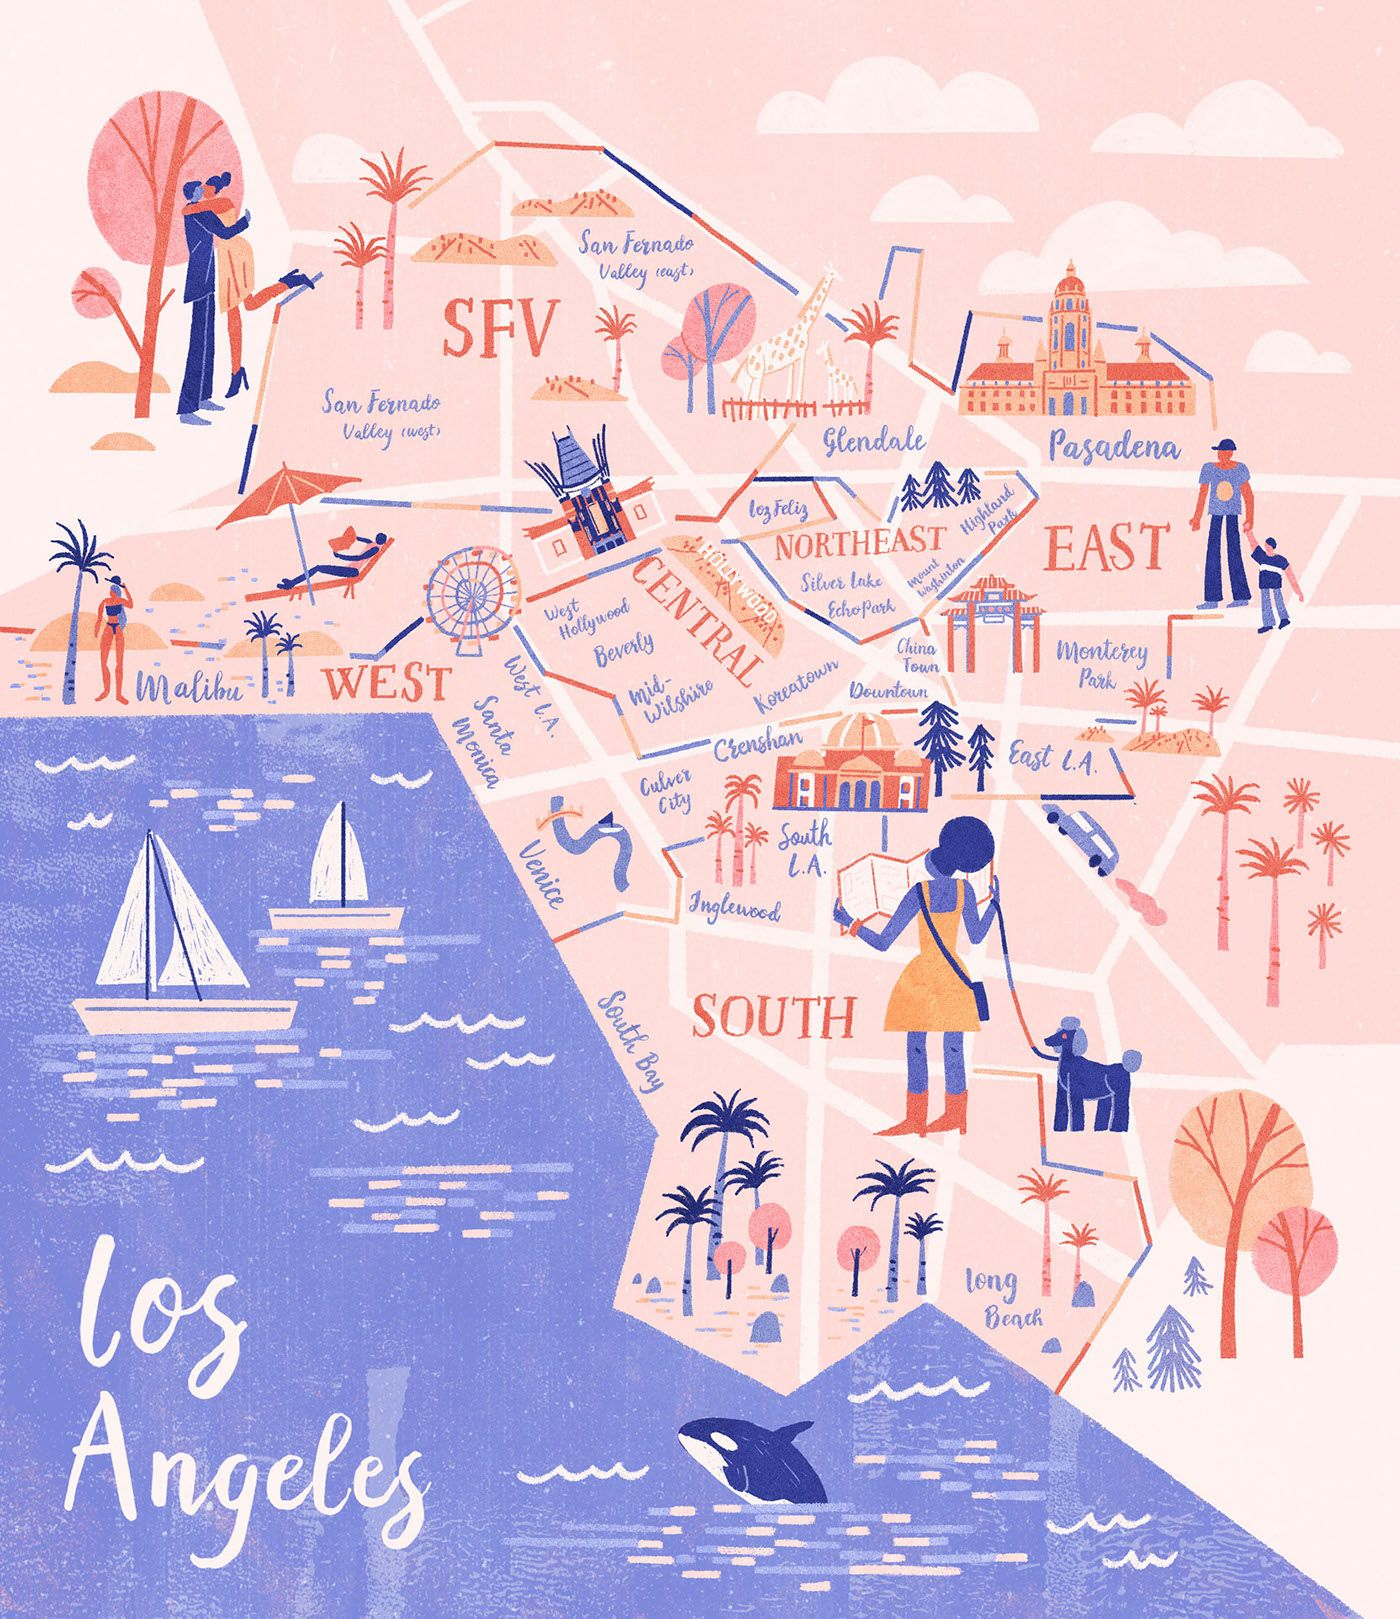 Map Illustration For La Weekly S Best Of La The Neighborhood Edition Illustrated Map Maps Illustration Design Illustration